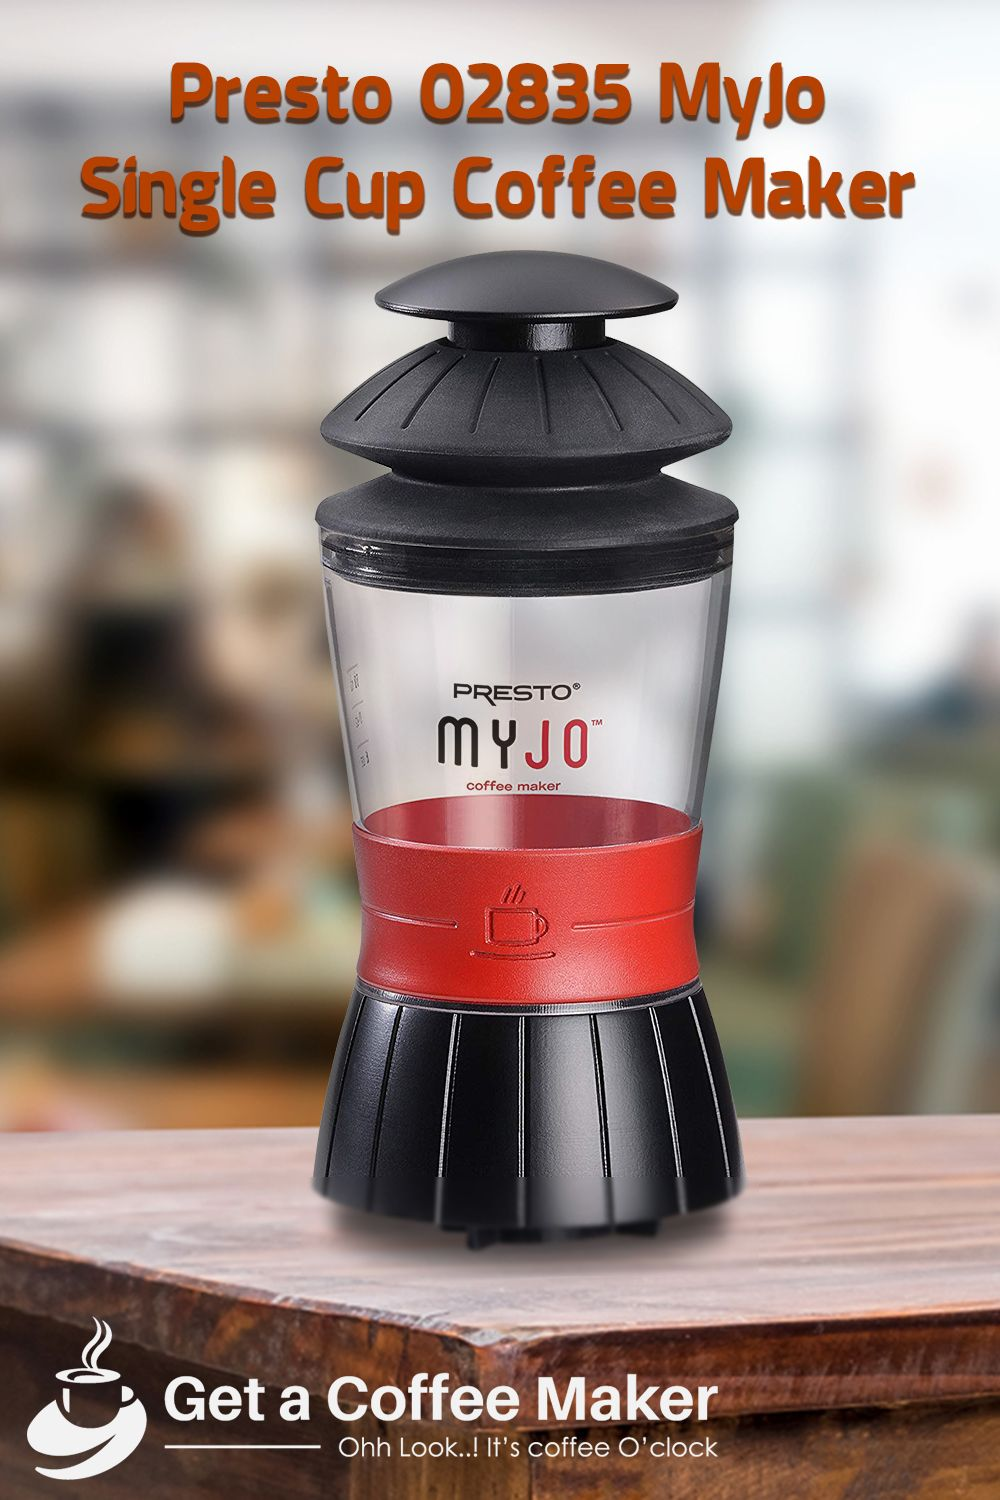 Top 10 Single Cup Coffee Makers (Dec. 2019) Reviews